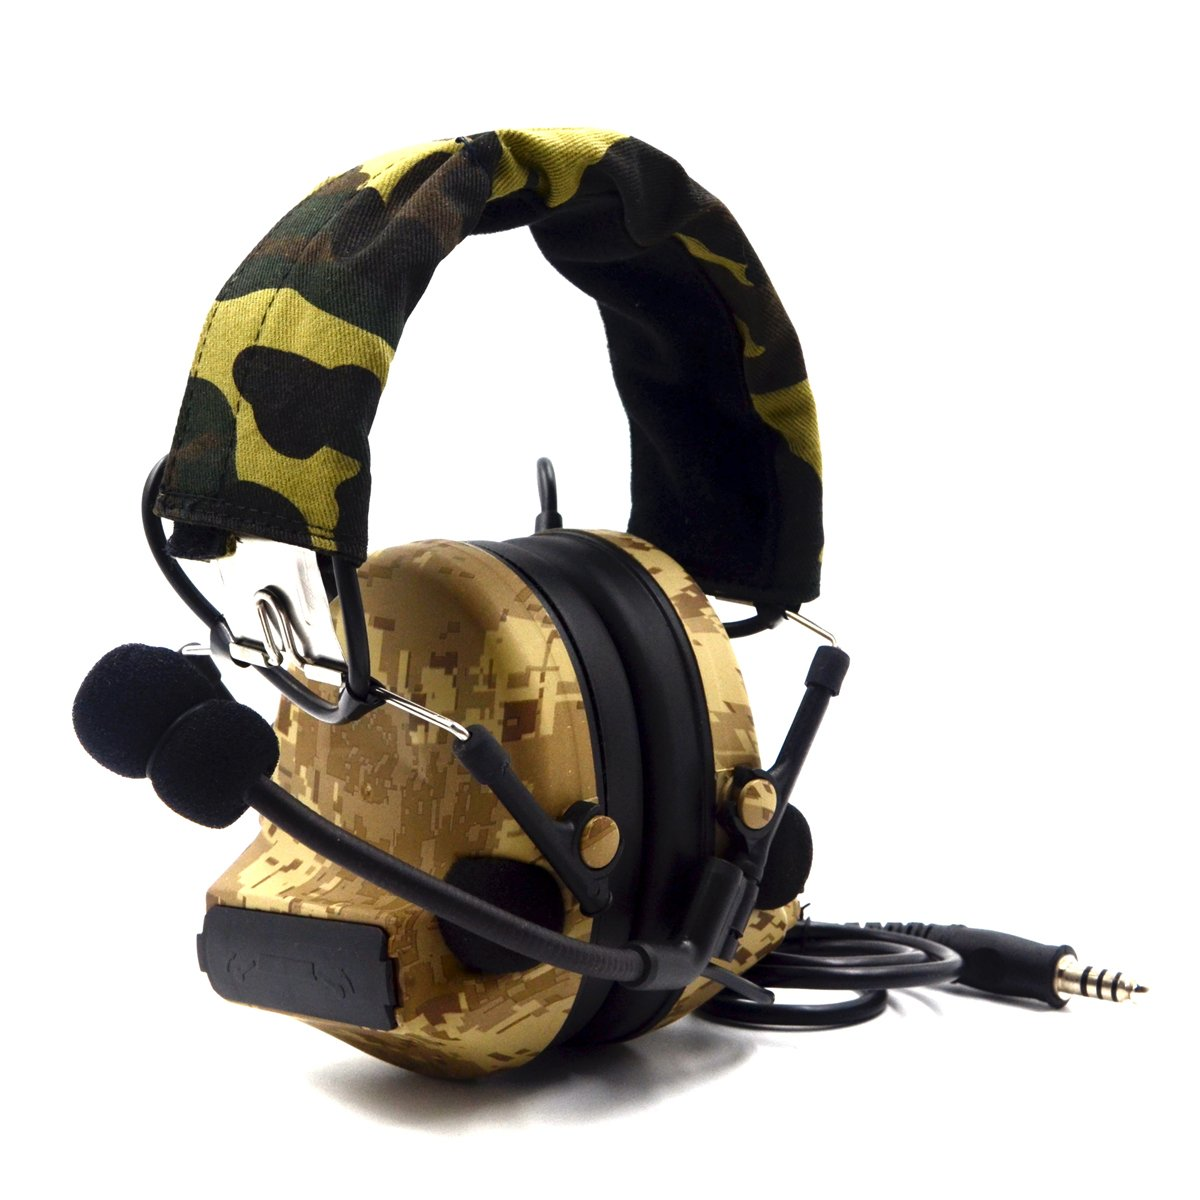 Electronic Earmuff Sport Hearing Protector for Hunting & Shooting, Sand Color by Dolphin (Image #2)